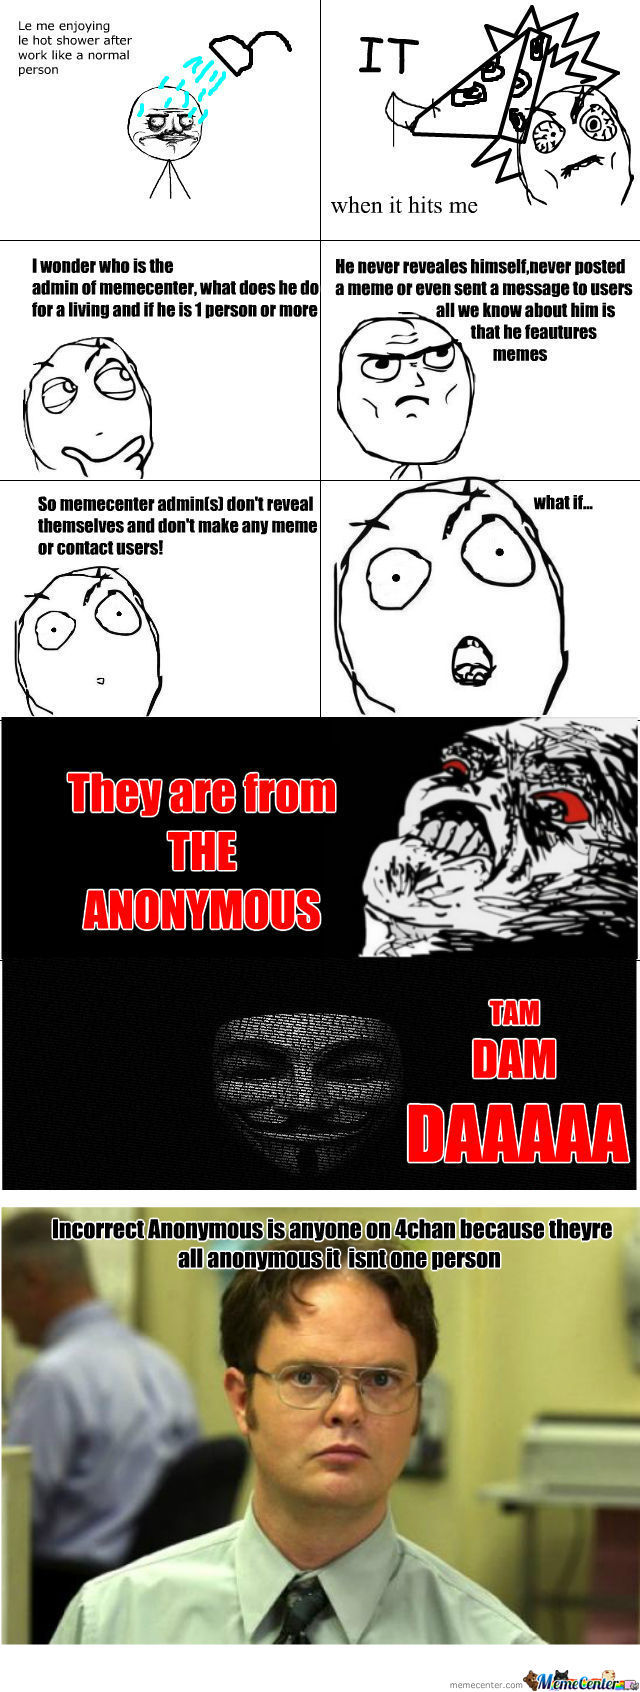 [RMX] Memecenter Admins Are The Anonymous